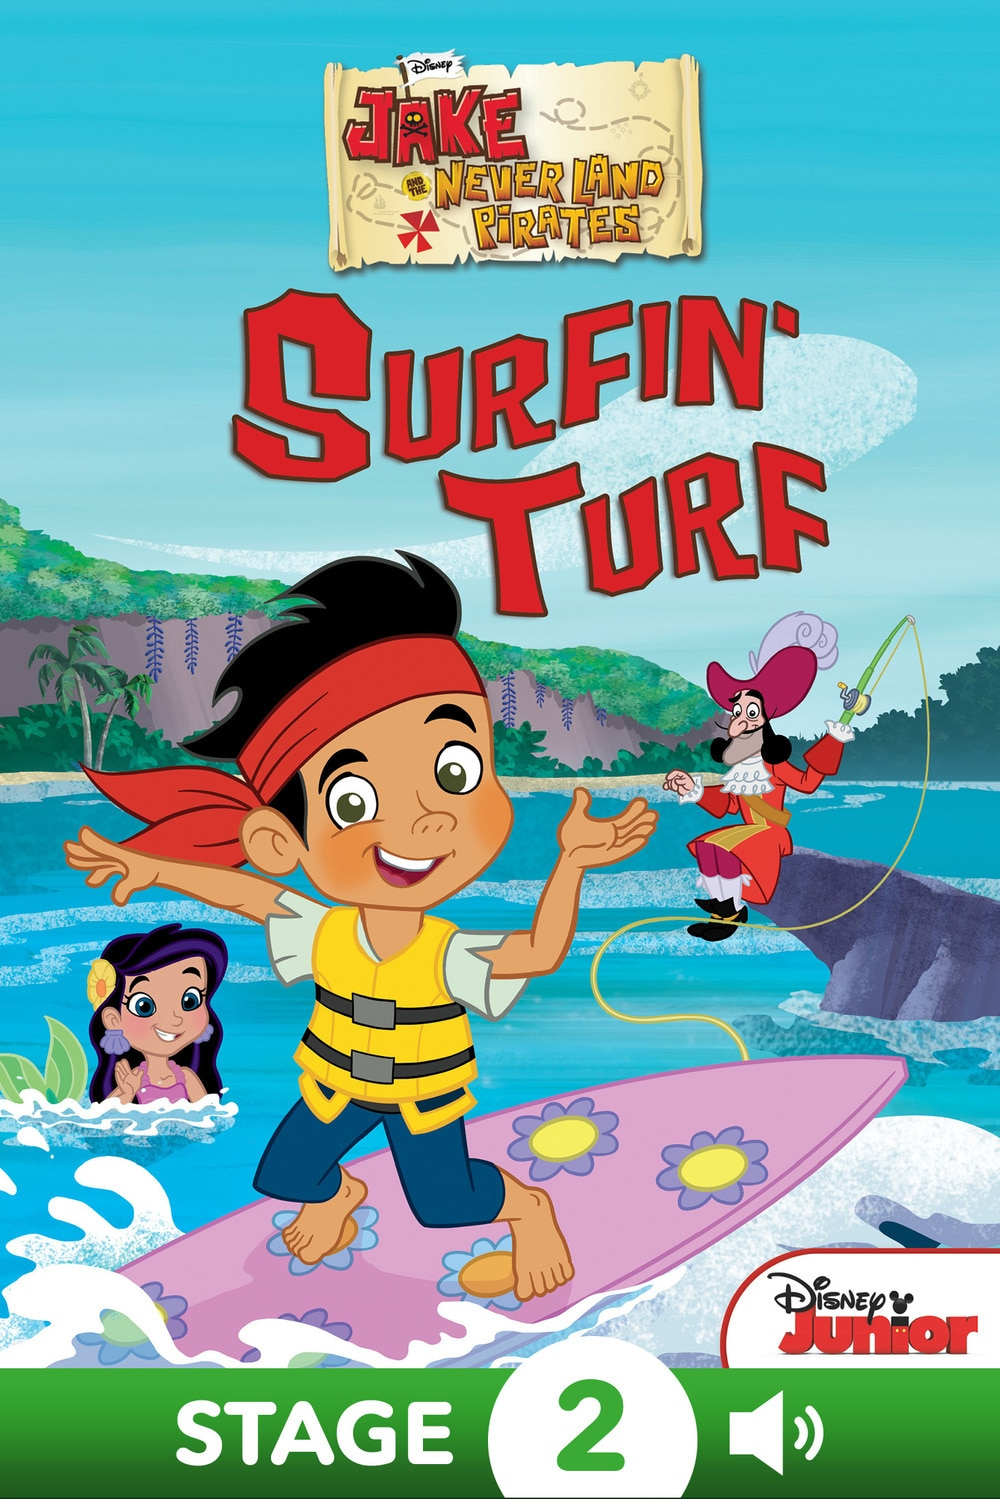 Jake and the Never Land Pirates: Surfin' Turf | DisneyLife